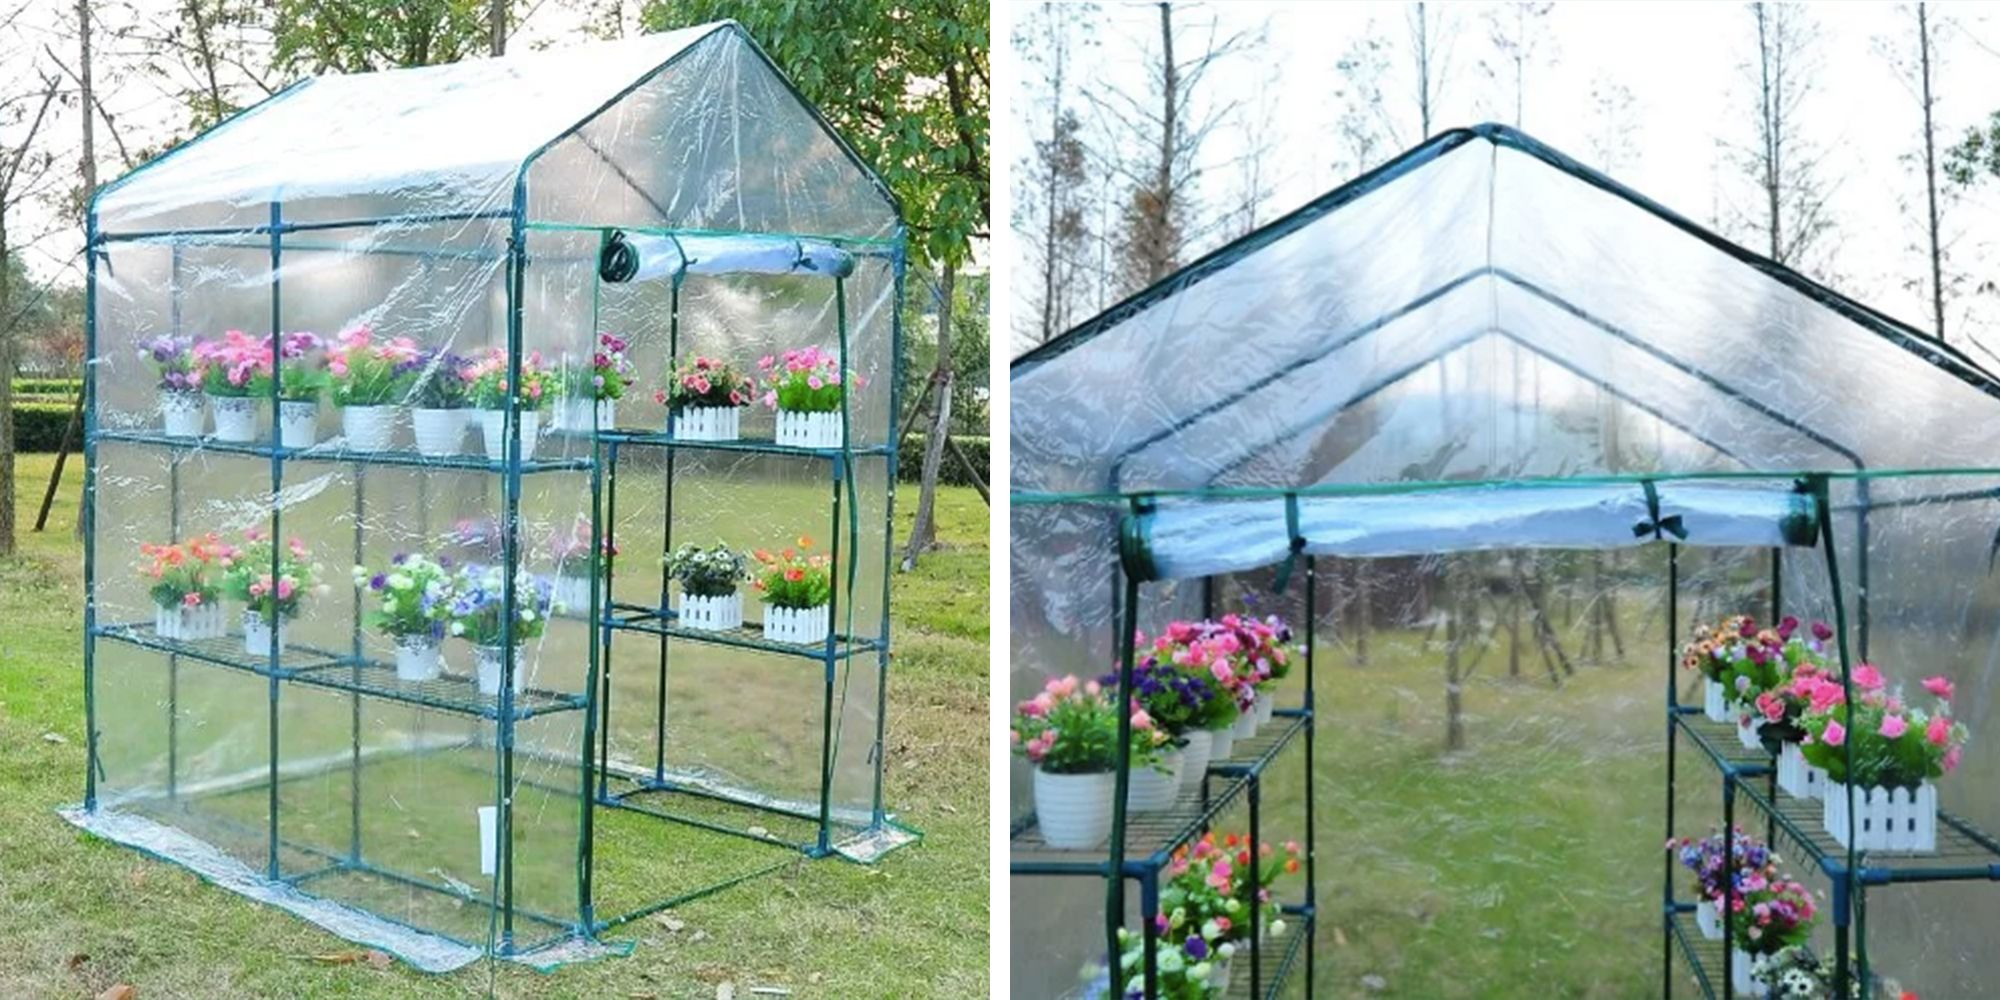 Wayfair Is Selling Greenhouses for Under $100